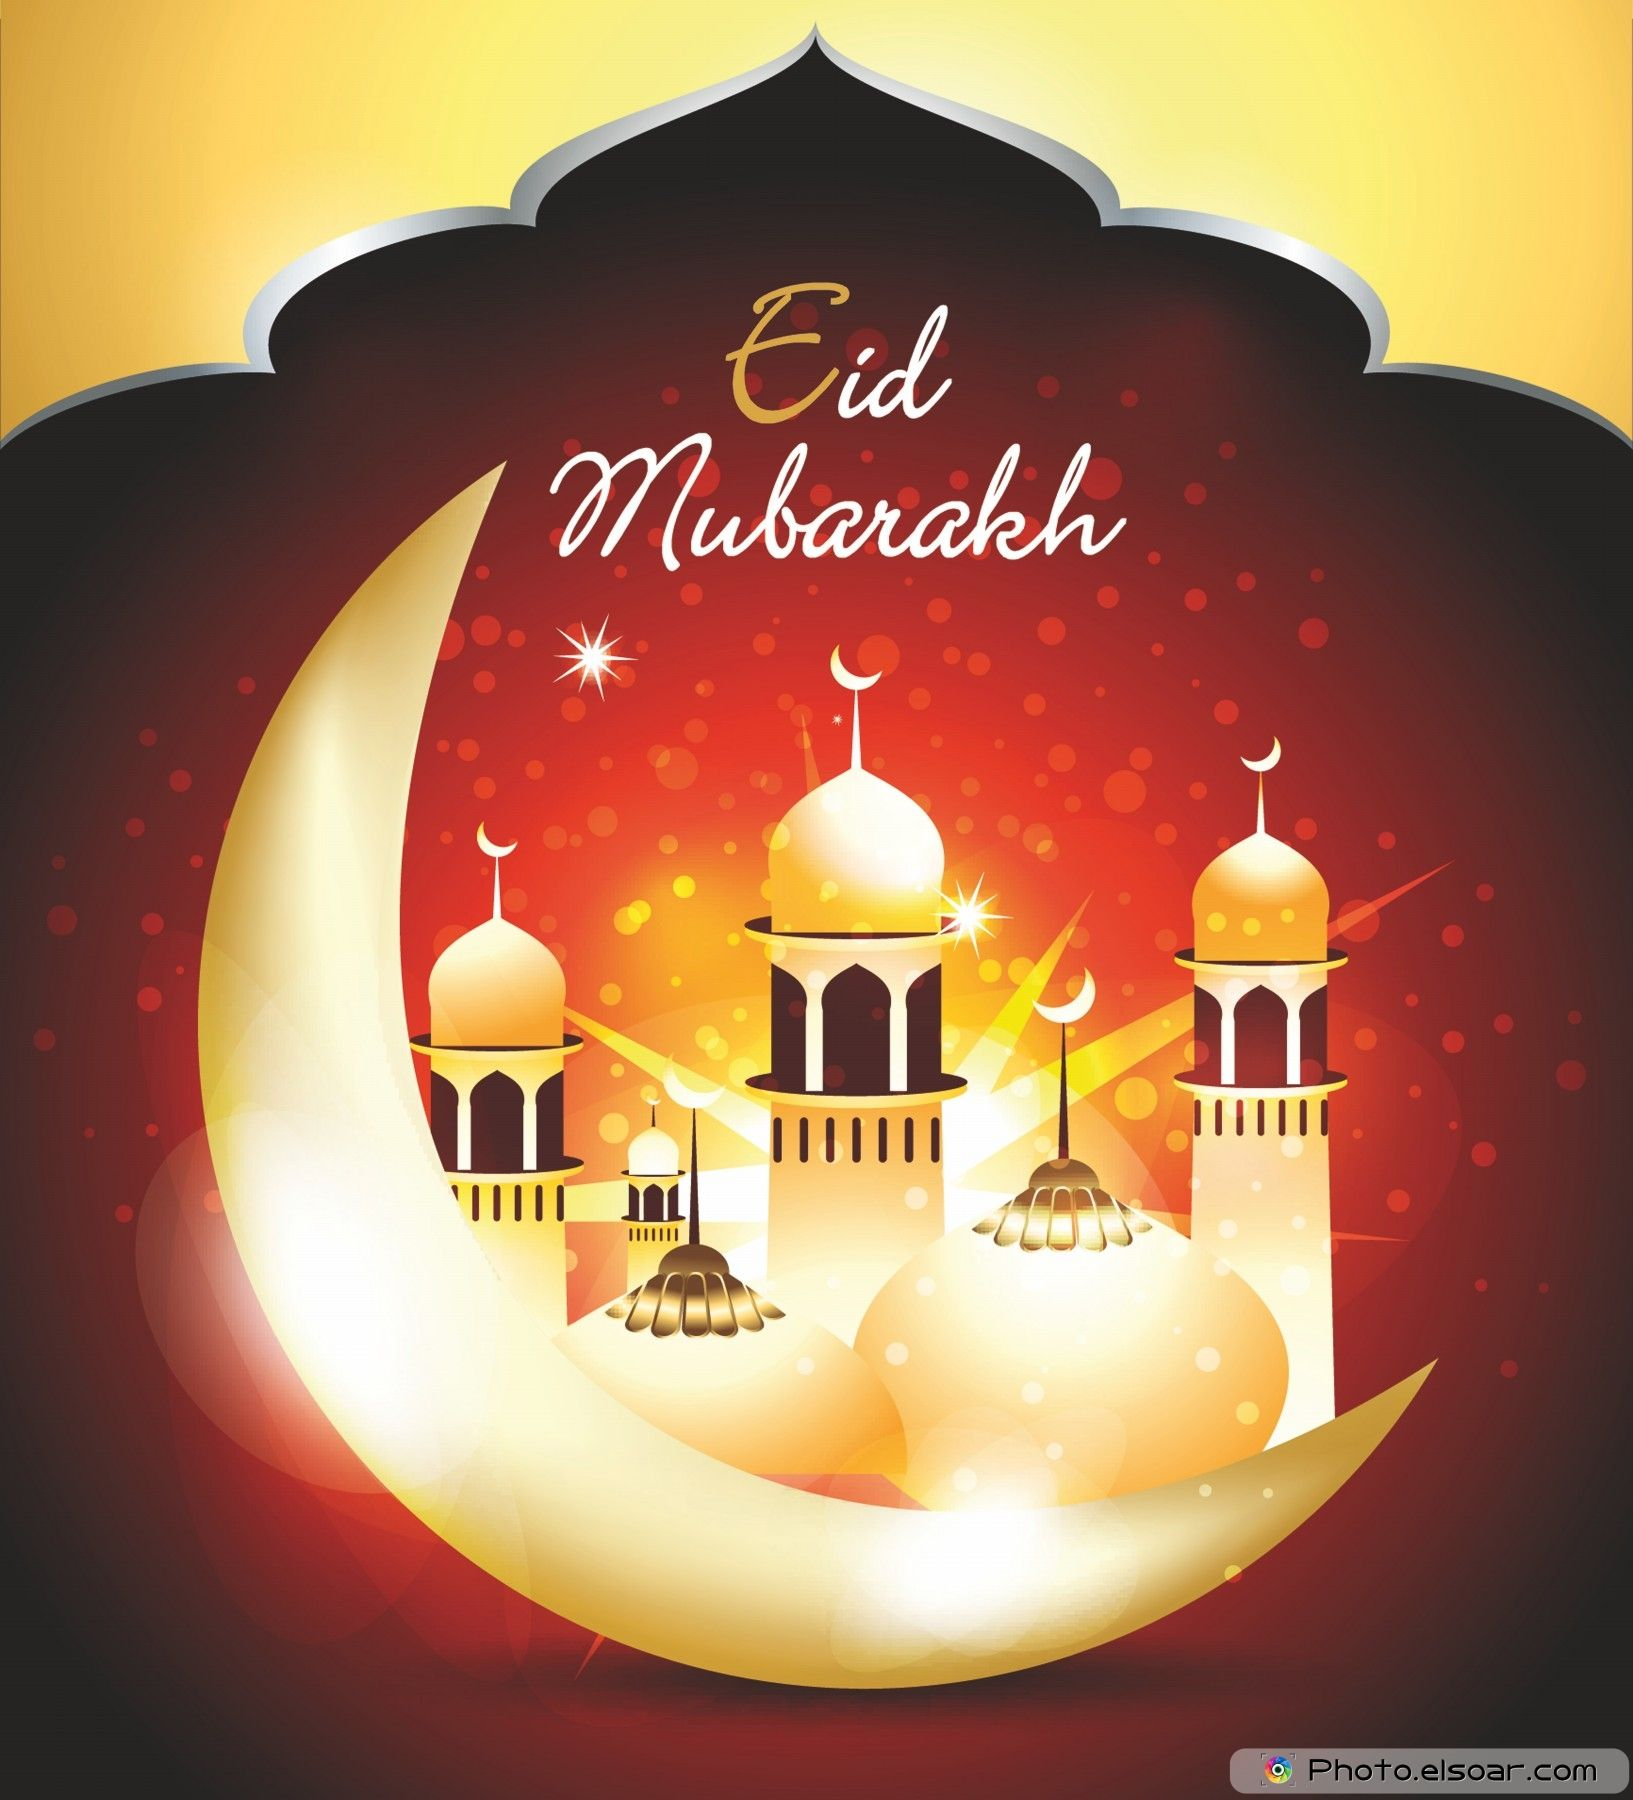 Eid Mubarak Wallpaper New - Live Wallpaper HD  Eid mubarak photo